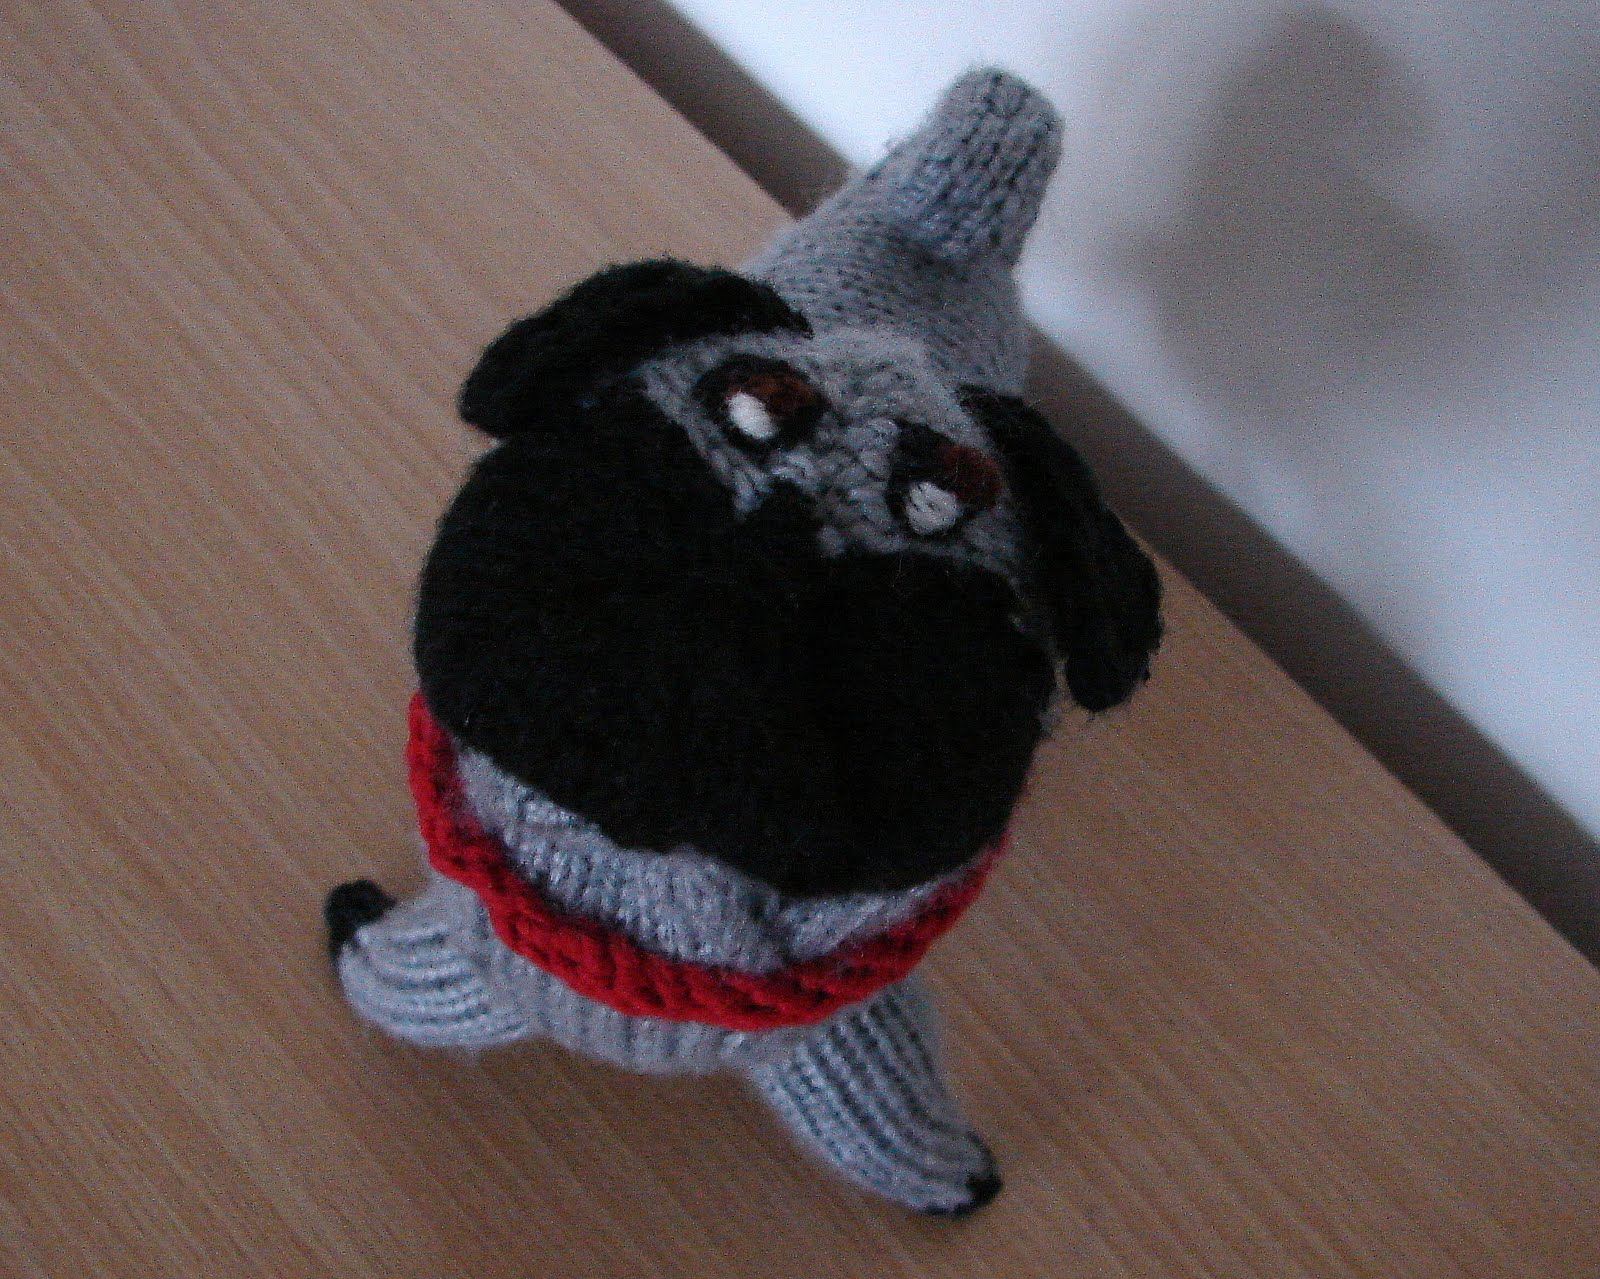 Knitting Pattern Pug Dog Sweater : Ferbys Corner Knitting: Knitted pug dog